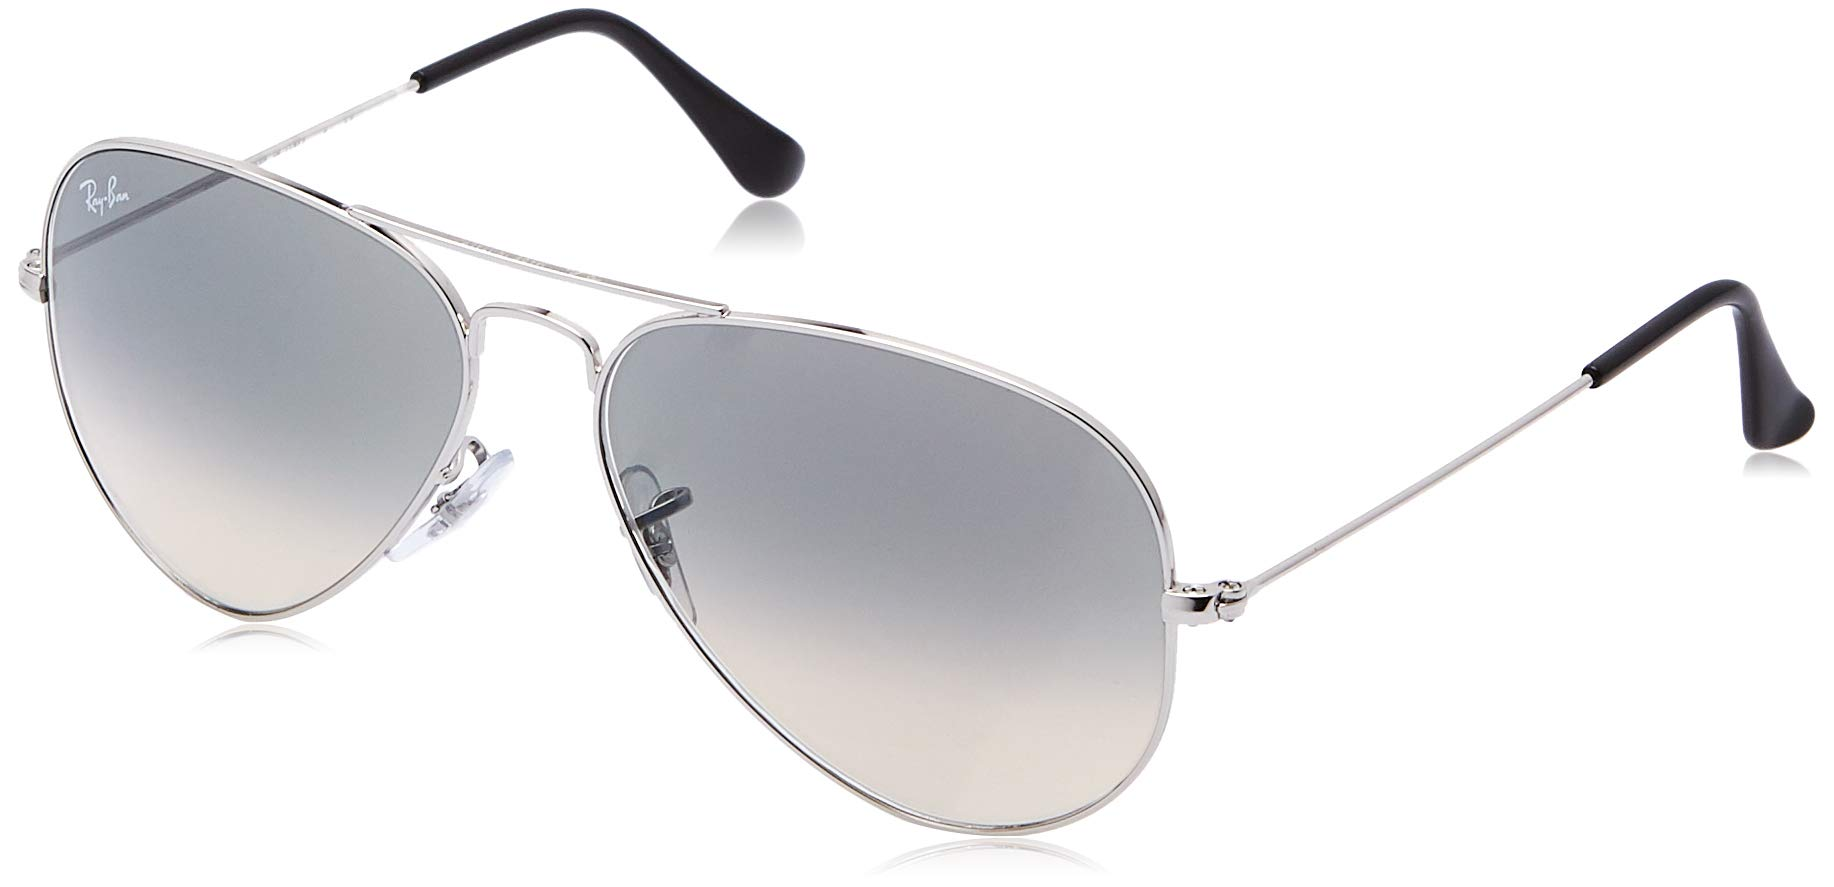 RAY-BAN RB3025 Aviator Large Metal Sunglasses, Silver/Grey Gradient, 58 mm by RAY-BAN